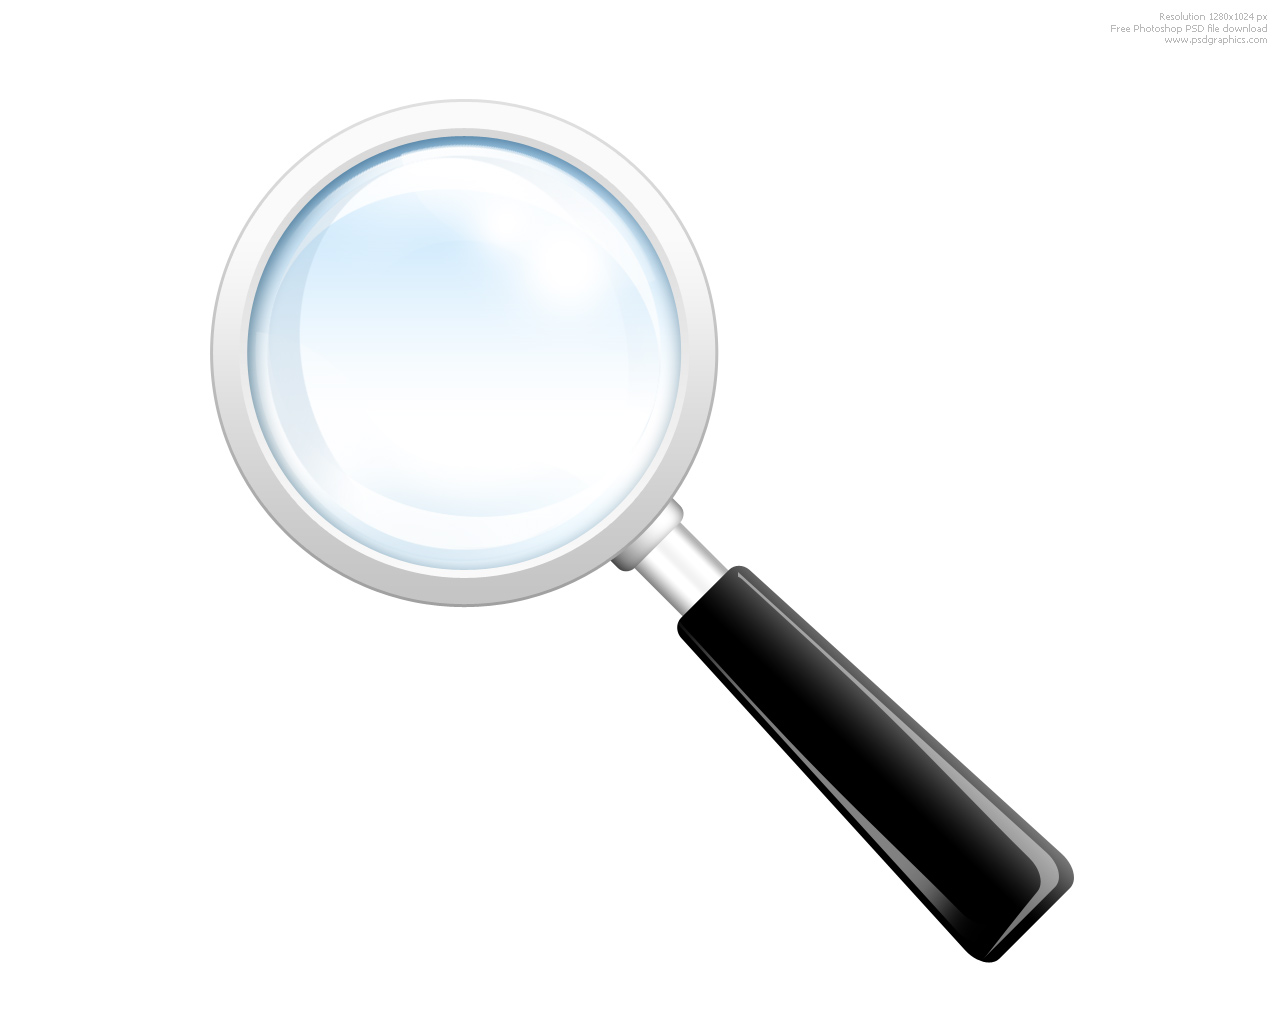 13 Magnifying Glass Search Button Icon Images